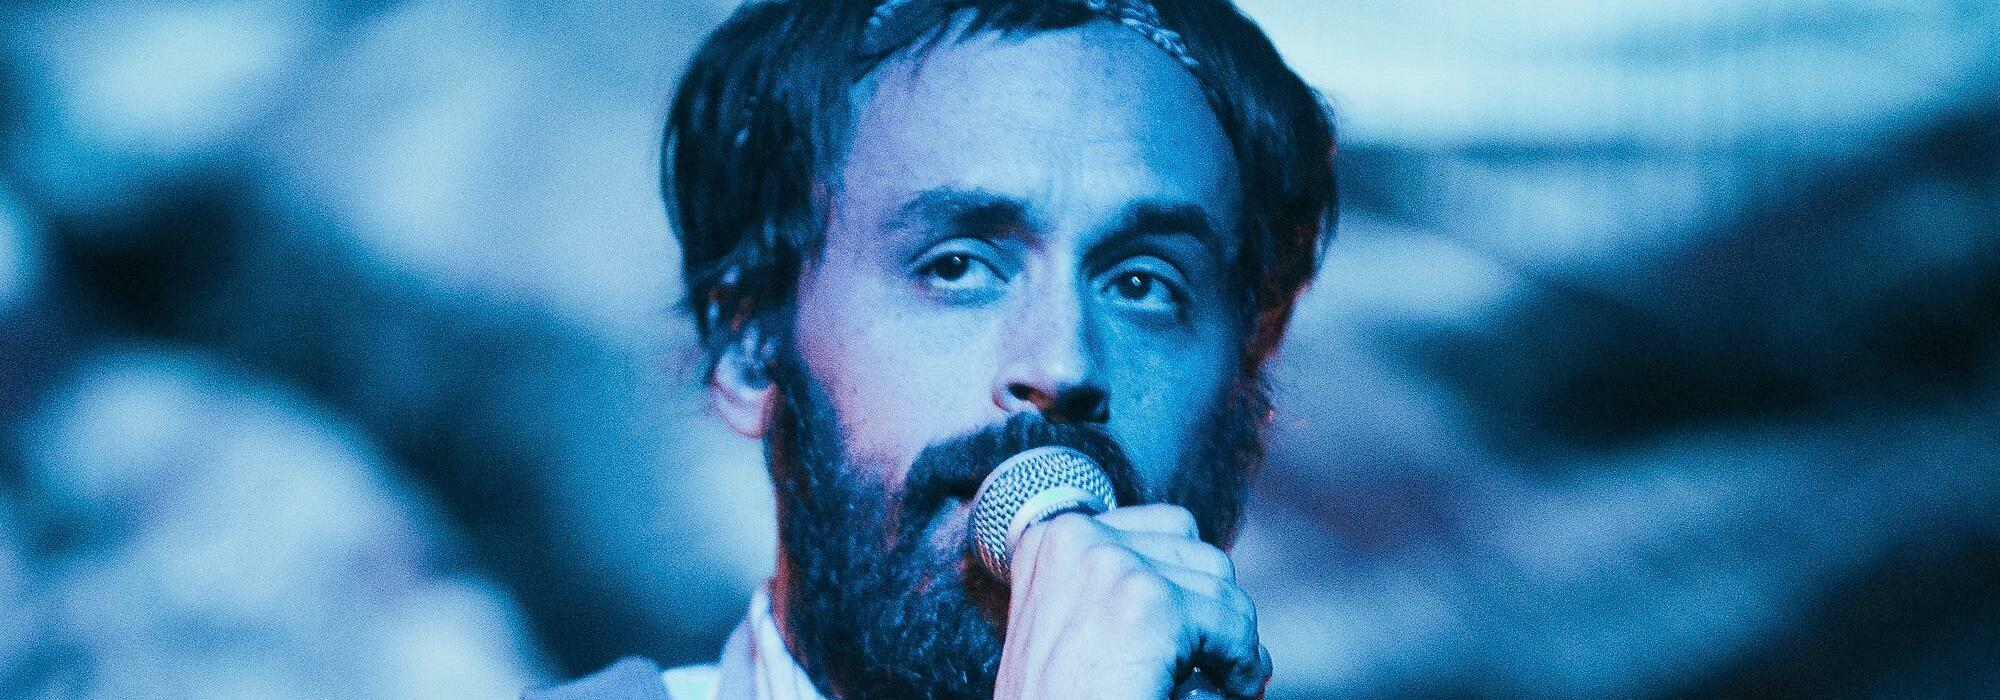 A mewithoutYou live event